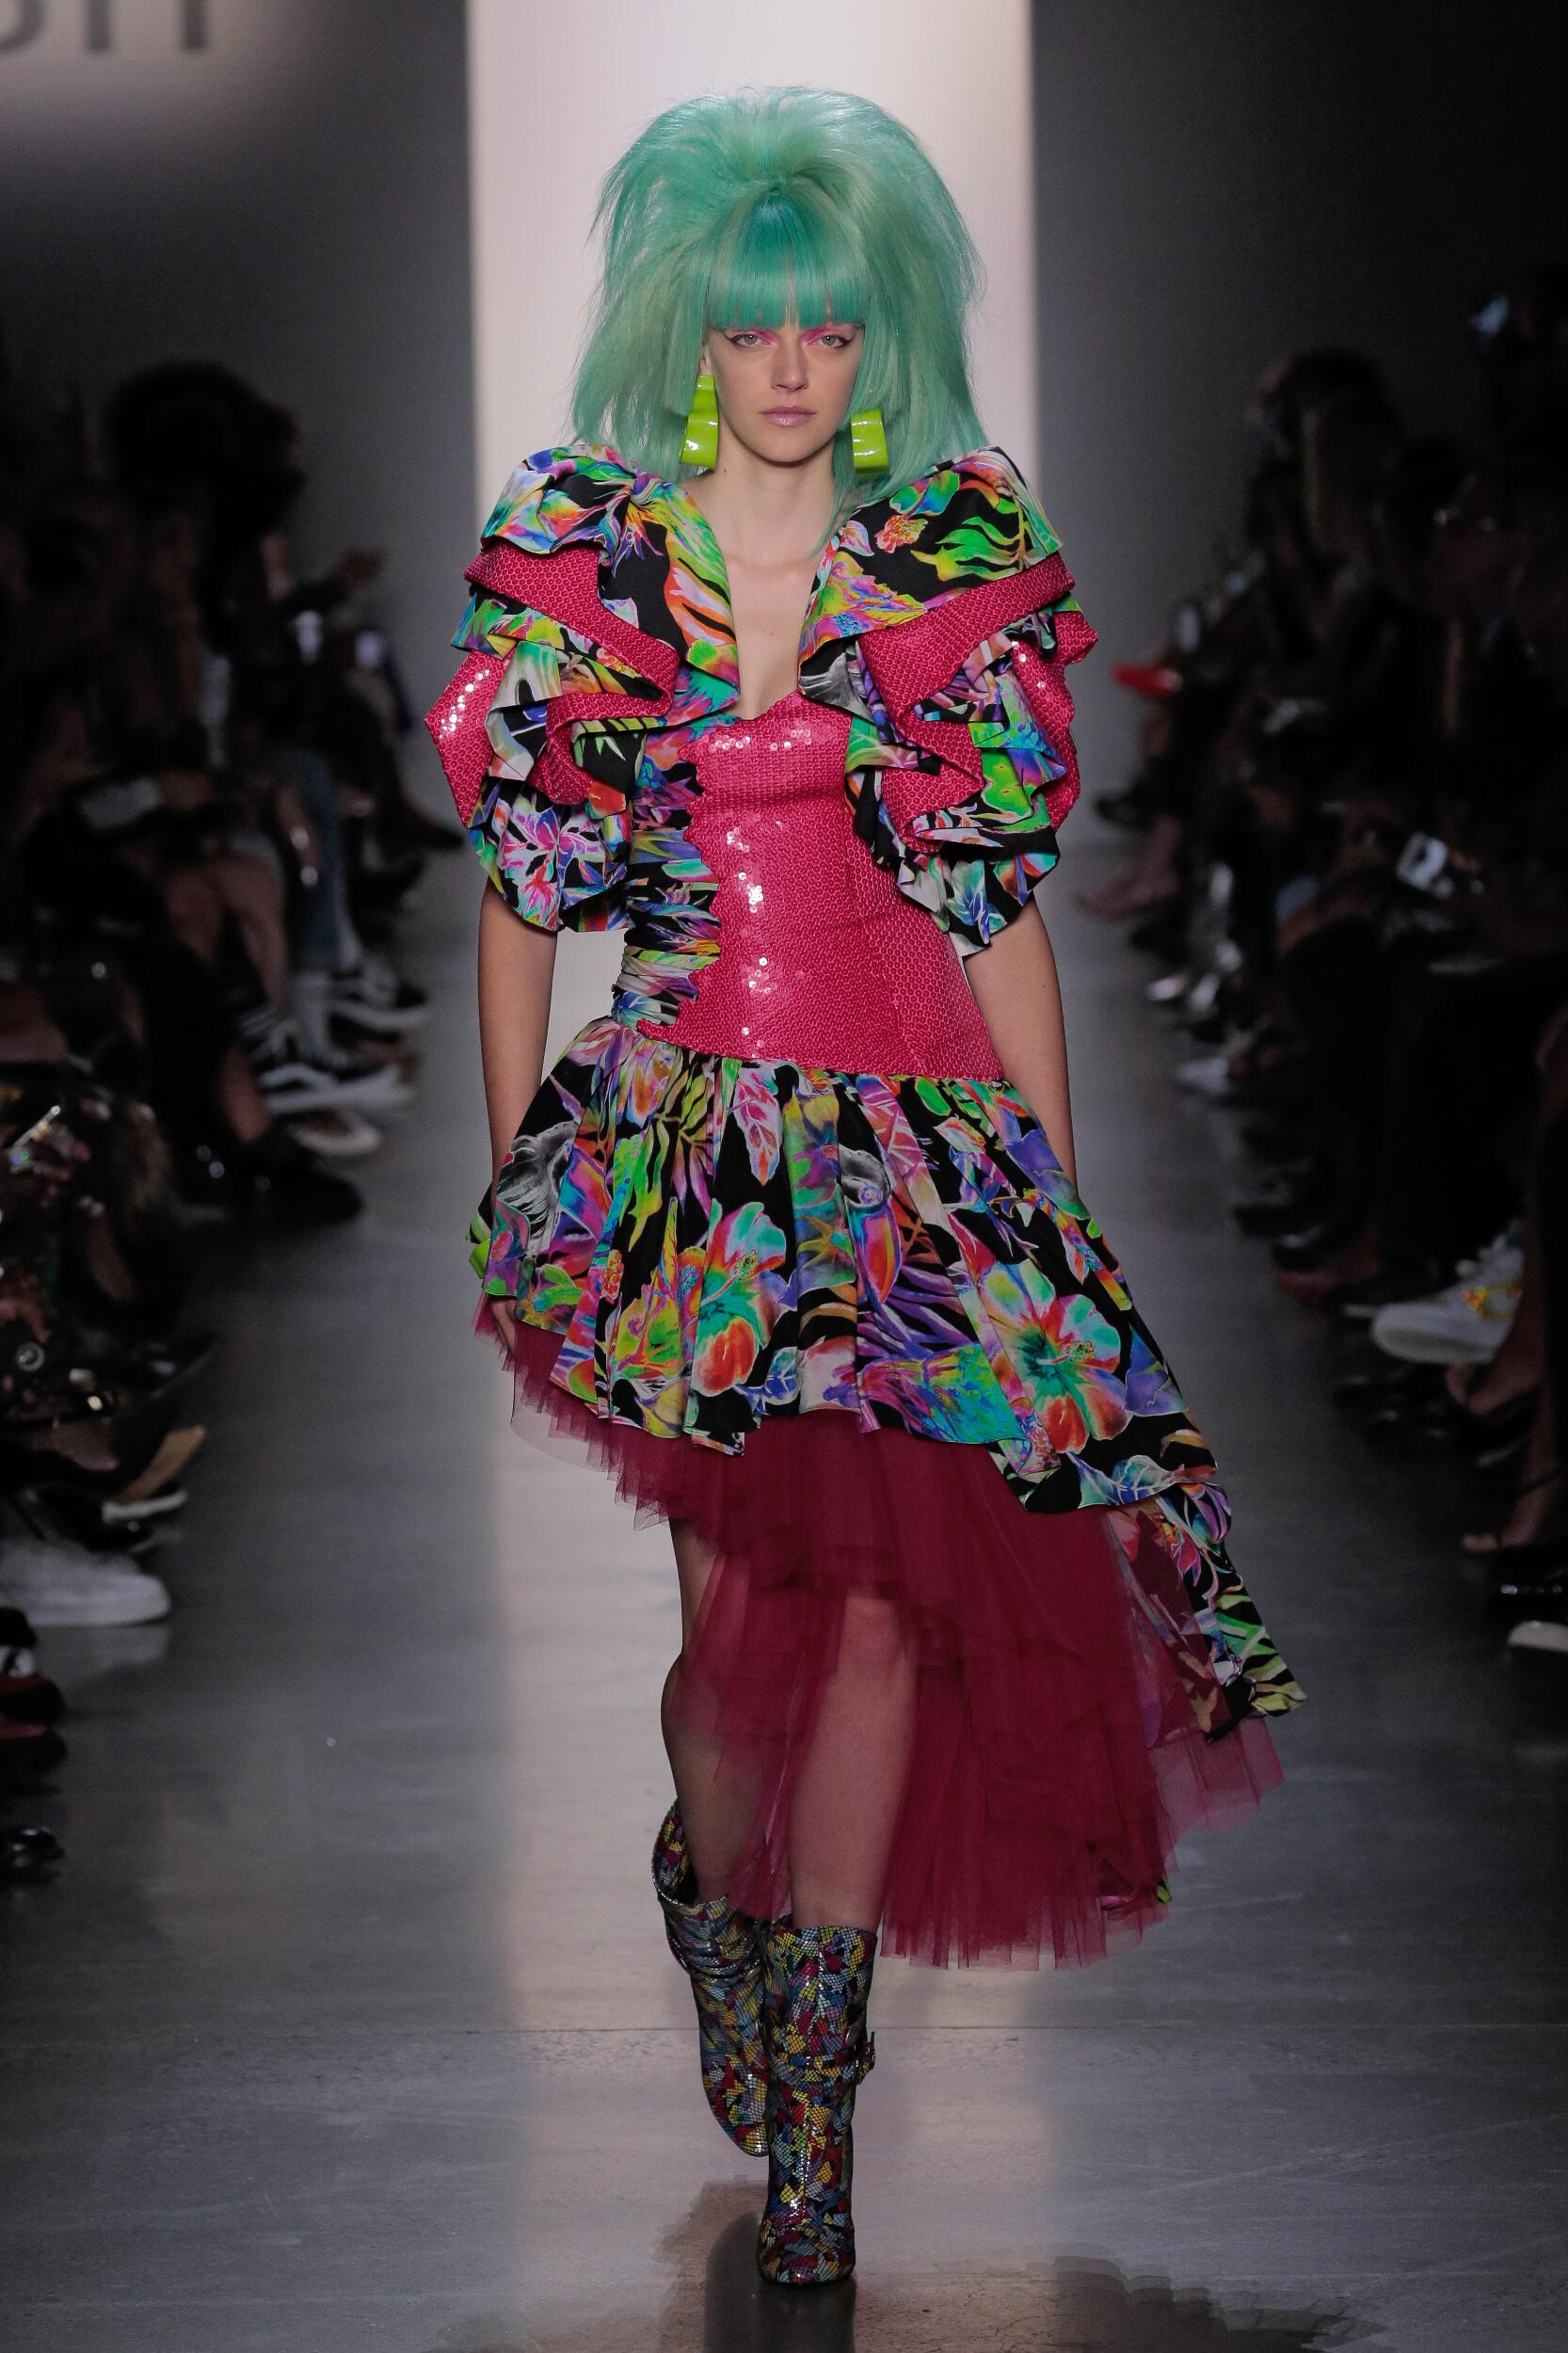 Catwalk Jeremy Scott Woman Fashion Show Summer 2020